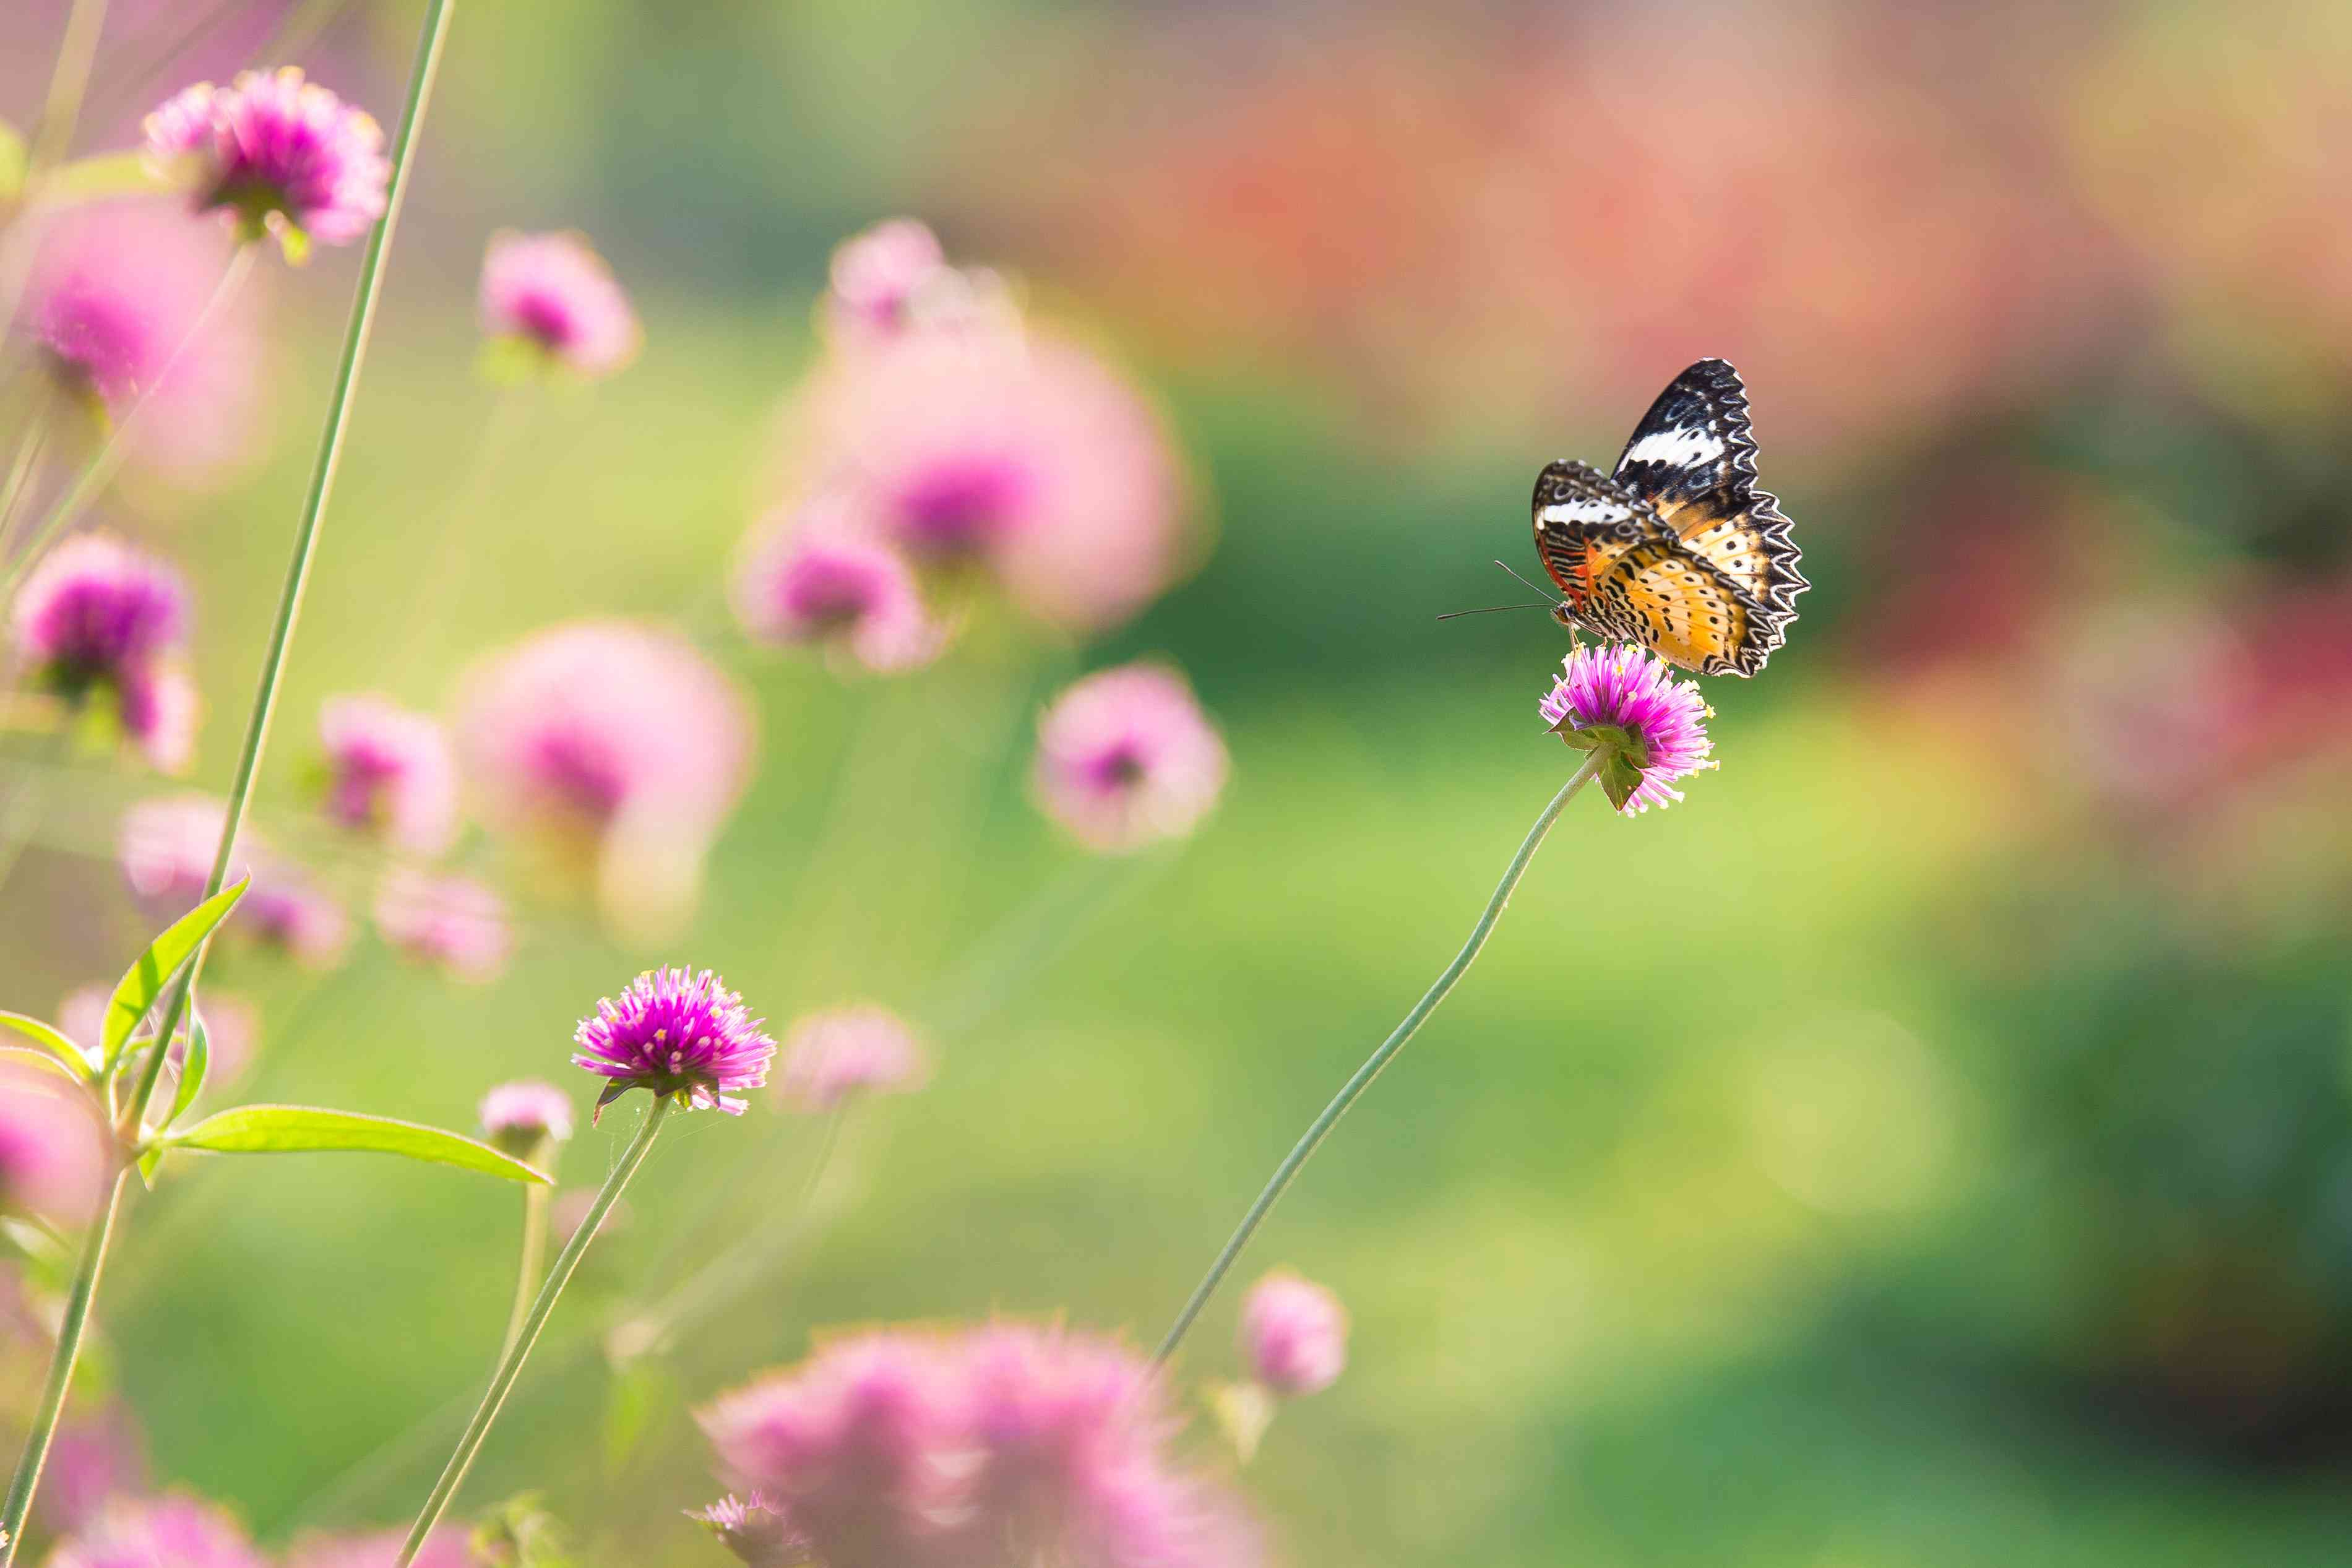 close up Beautiful Butterfly on amaranth Flower Field With sunlight on the garden background